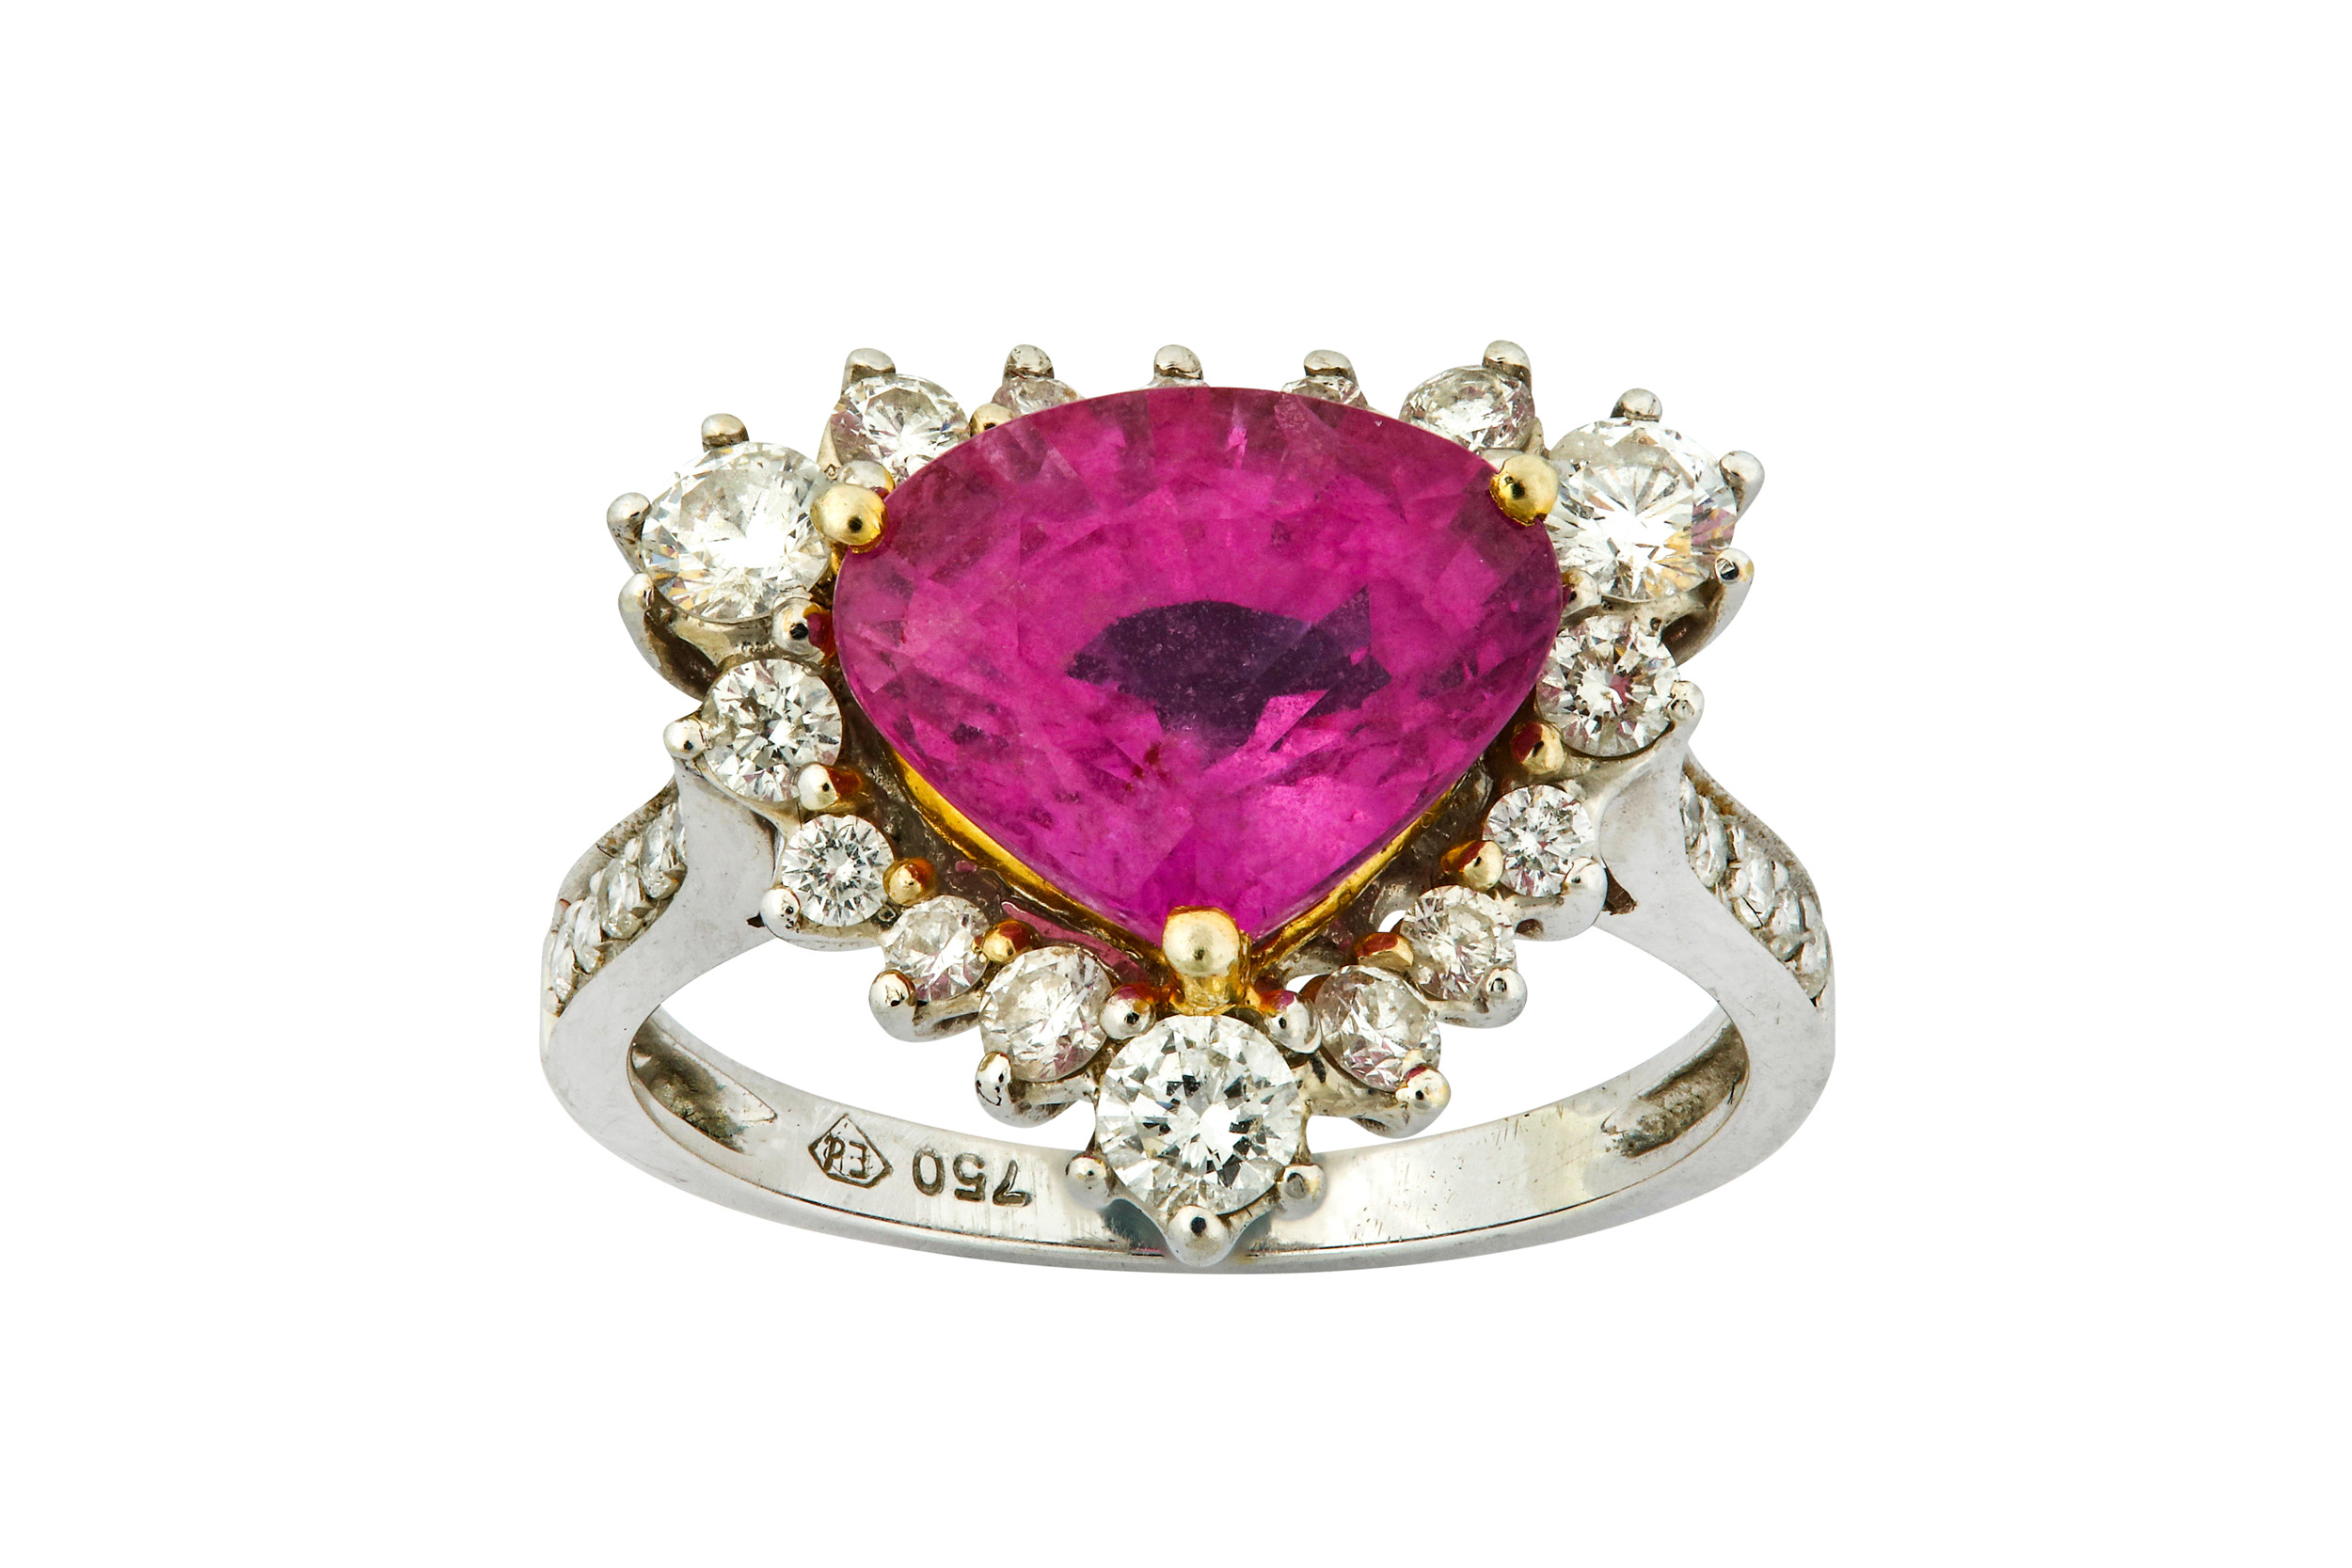 Lot 44 - A pink sapphire and diamond ring